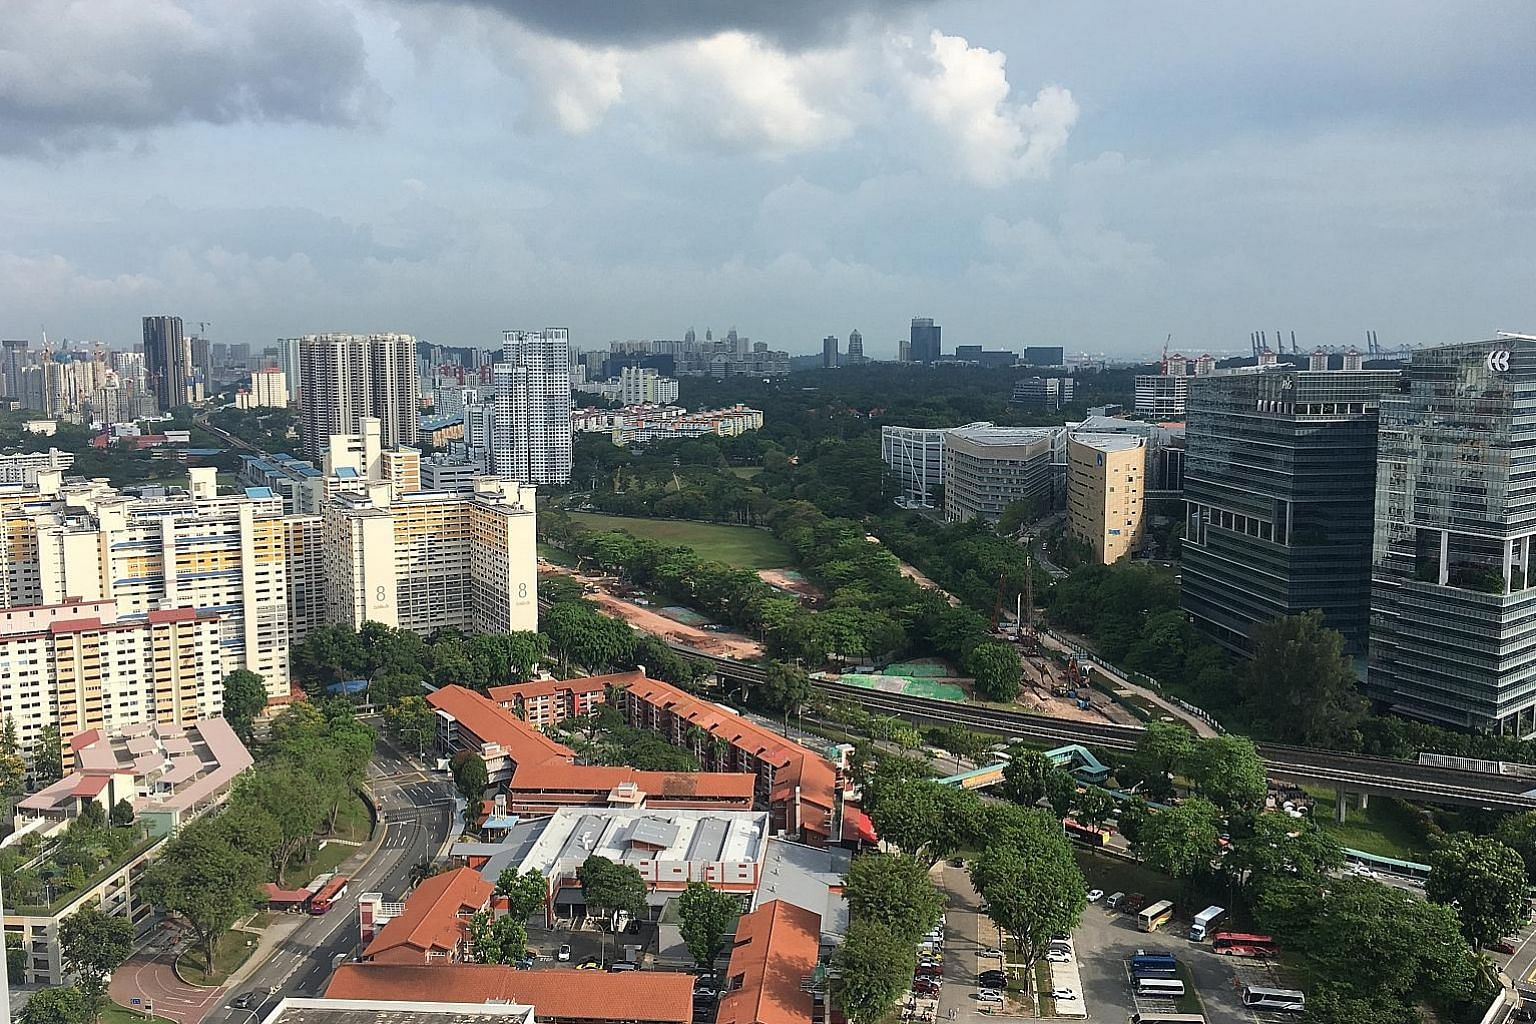 Above: The five-room HDB resale flat sold for $1.1 million is on the 38th floor of Block 18C in Holland Drive. Left: The view from the 38th floor of Block 18C.